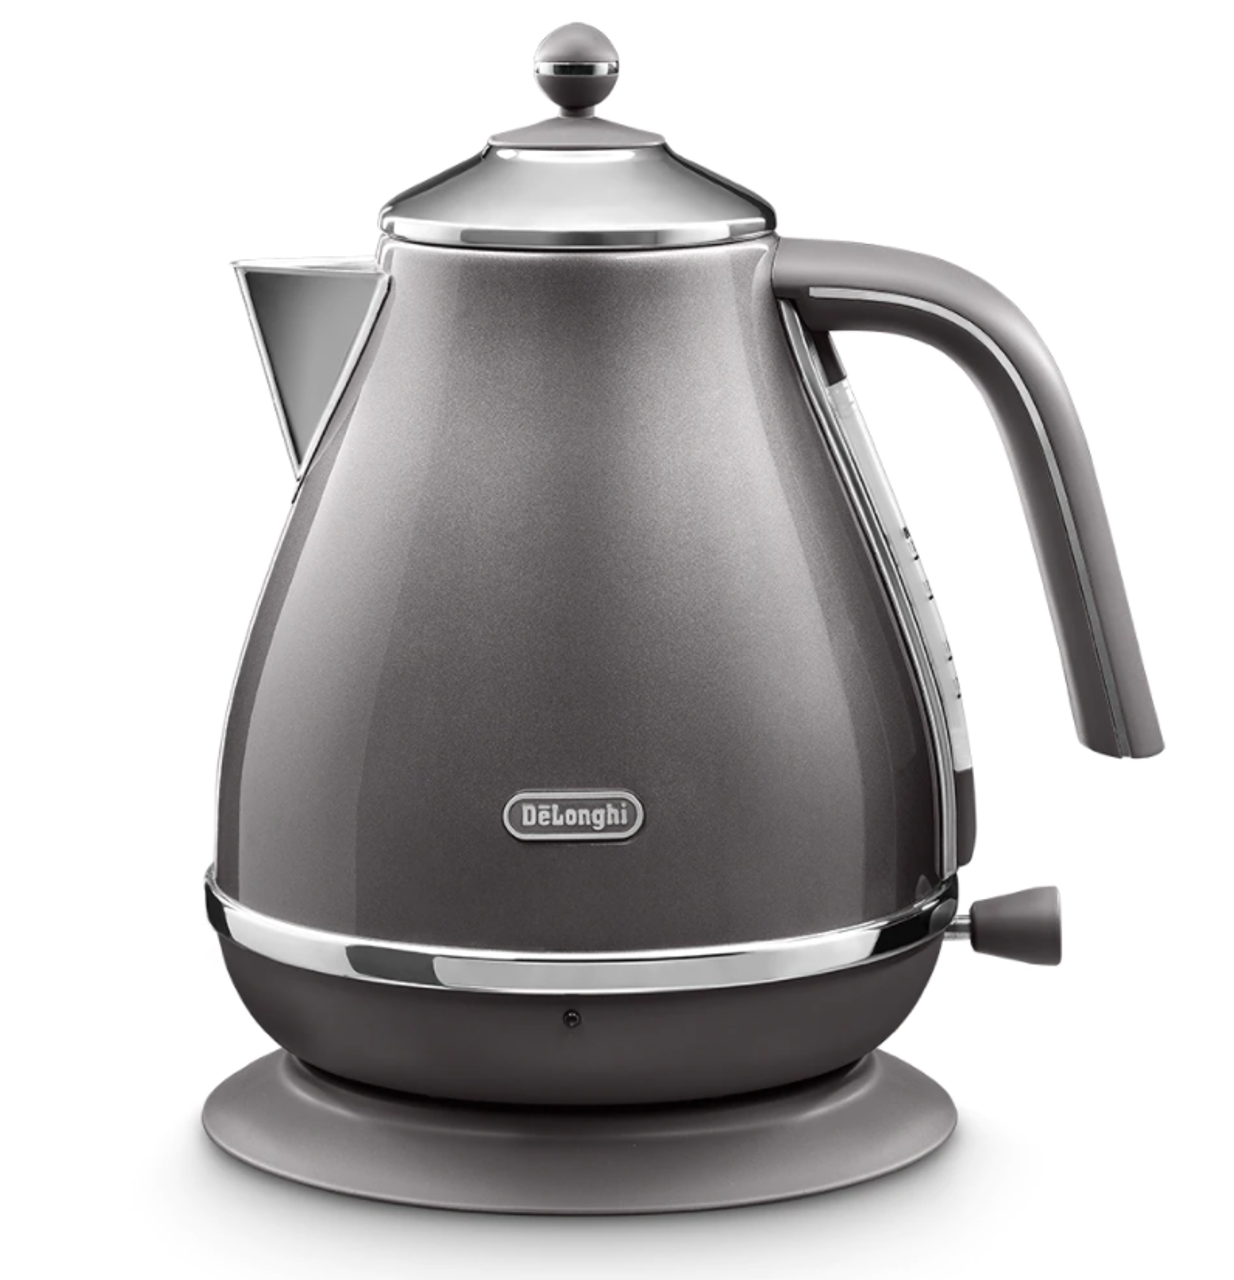 Delonghi CTOT4003GY KBOT2001GY Icona Metallics Toaster + Kettle – Grey